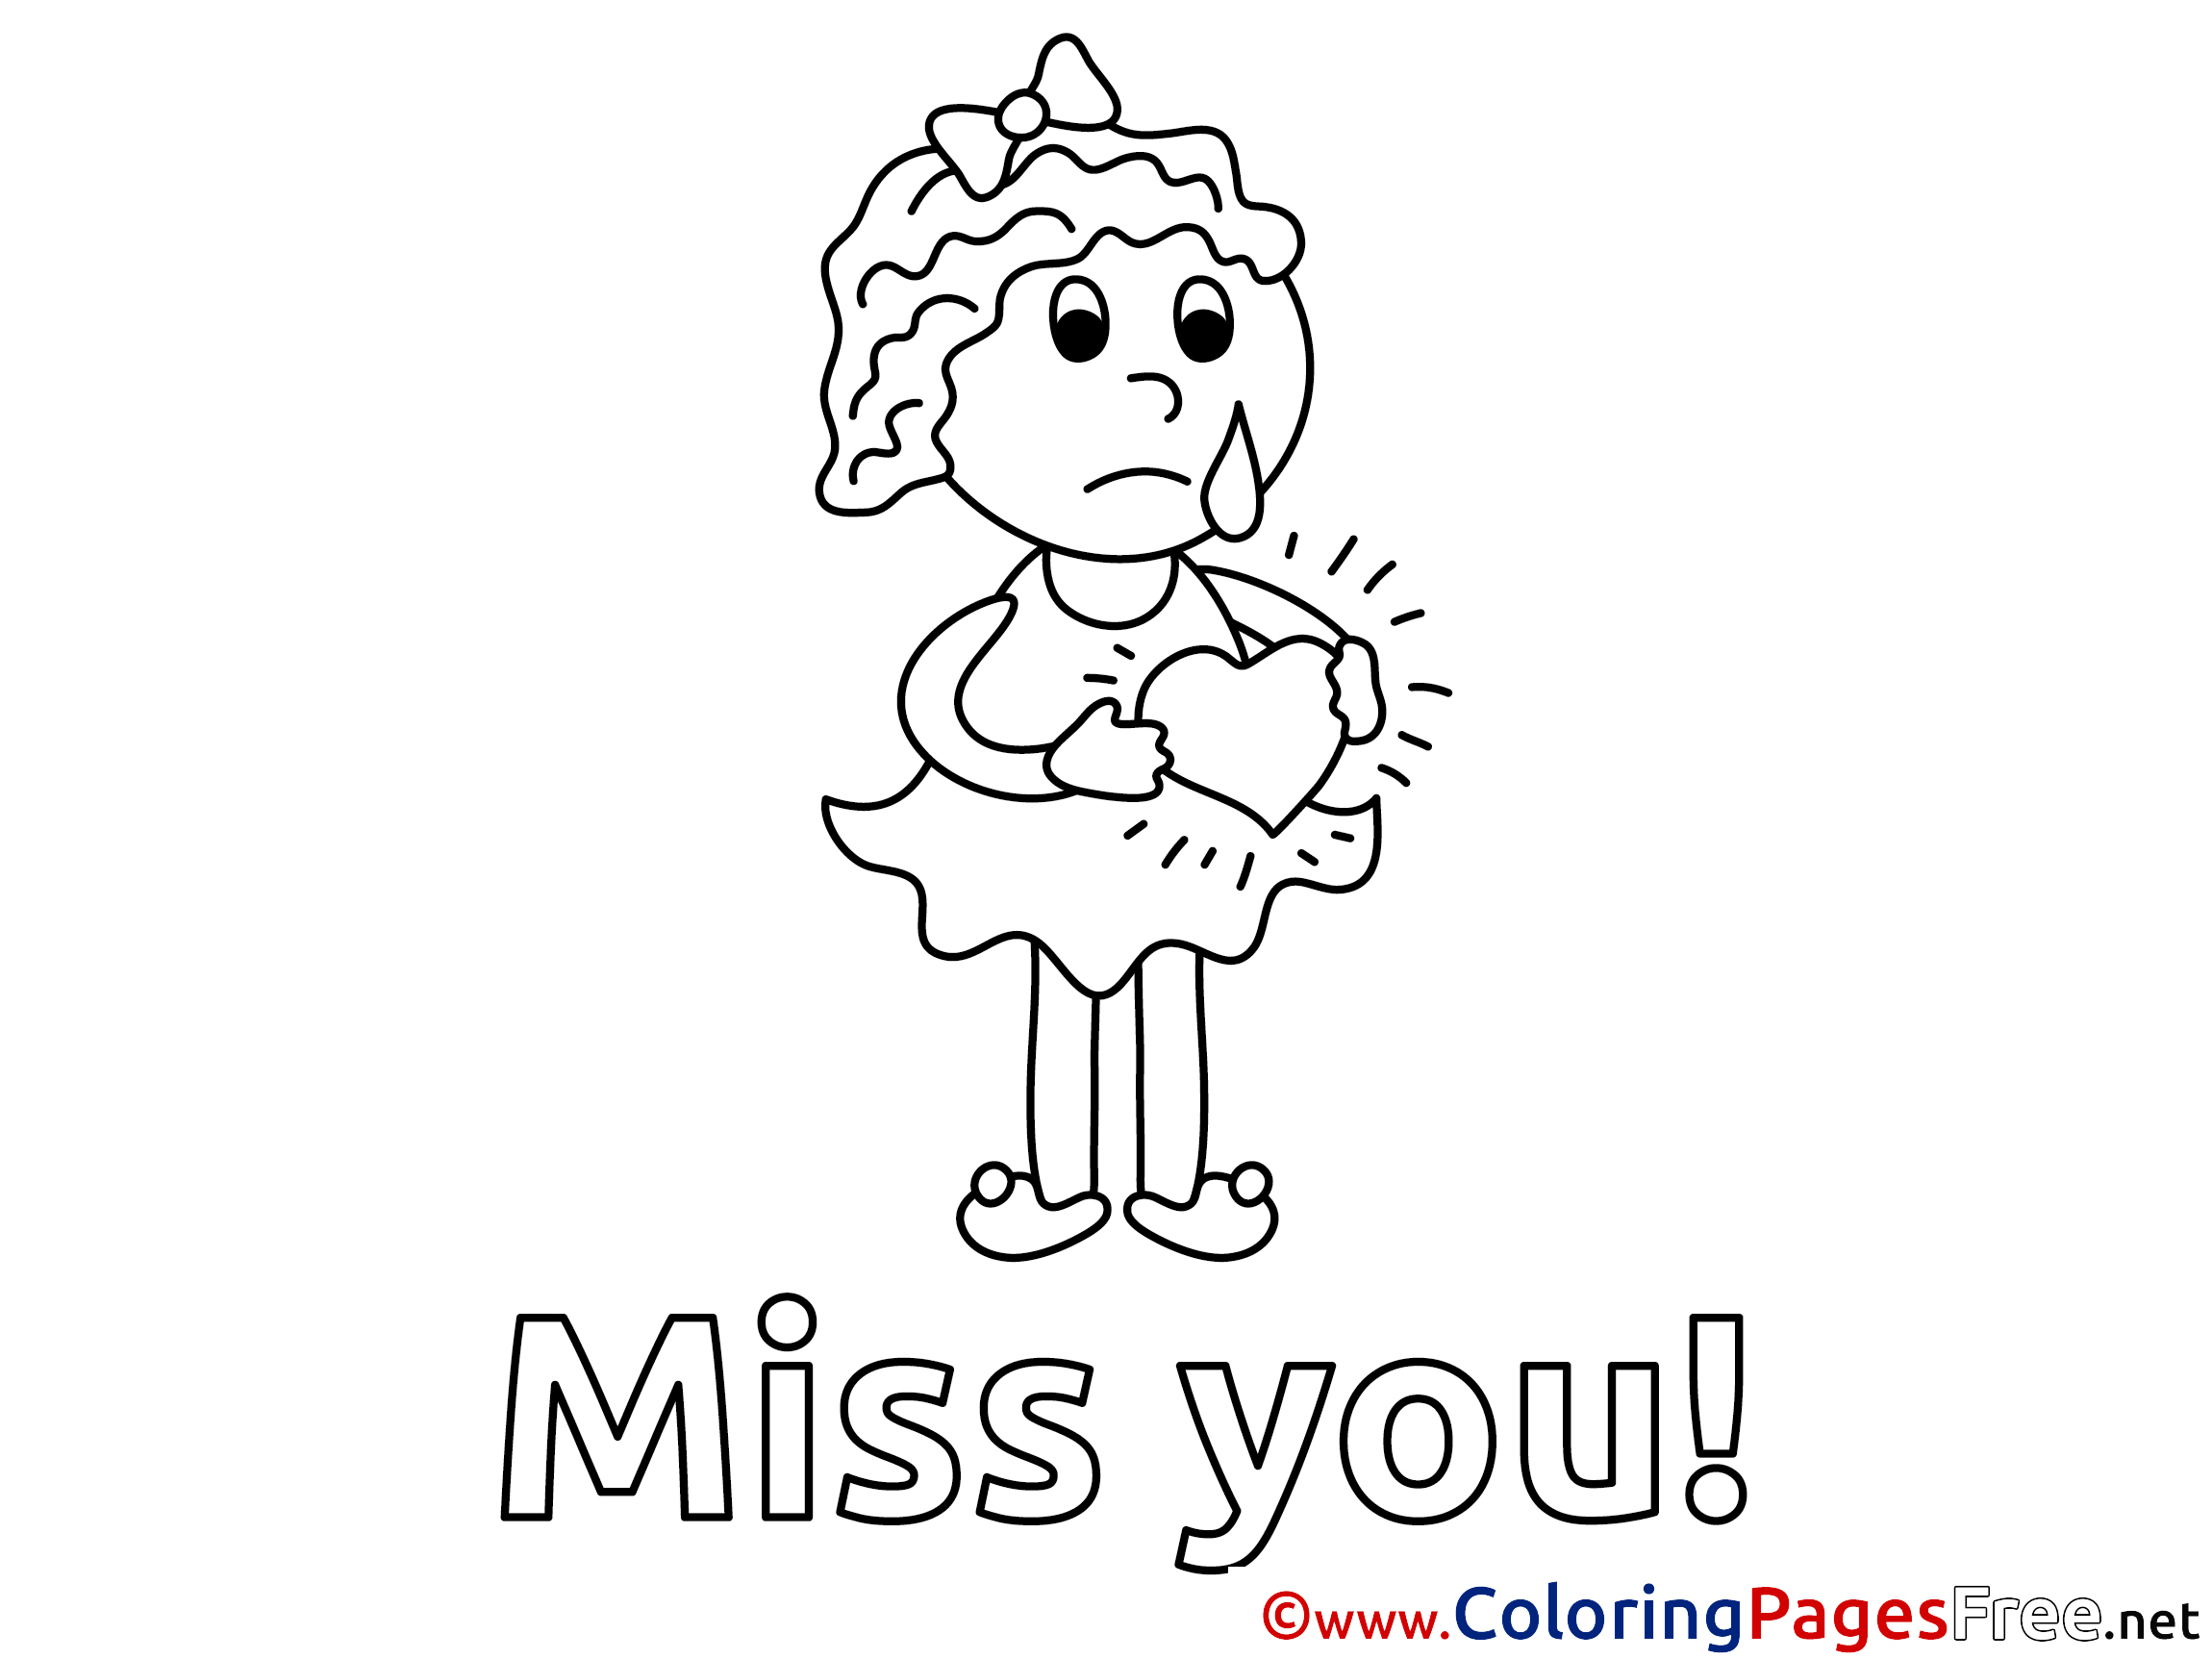 miss you coloring pages i will miss you coloring page tracing twisty noodle you coloring pages miss